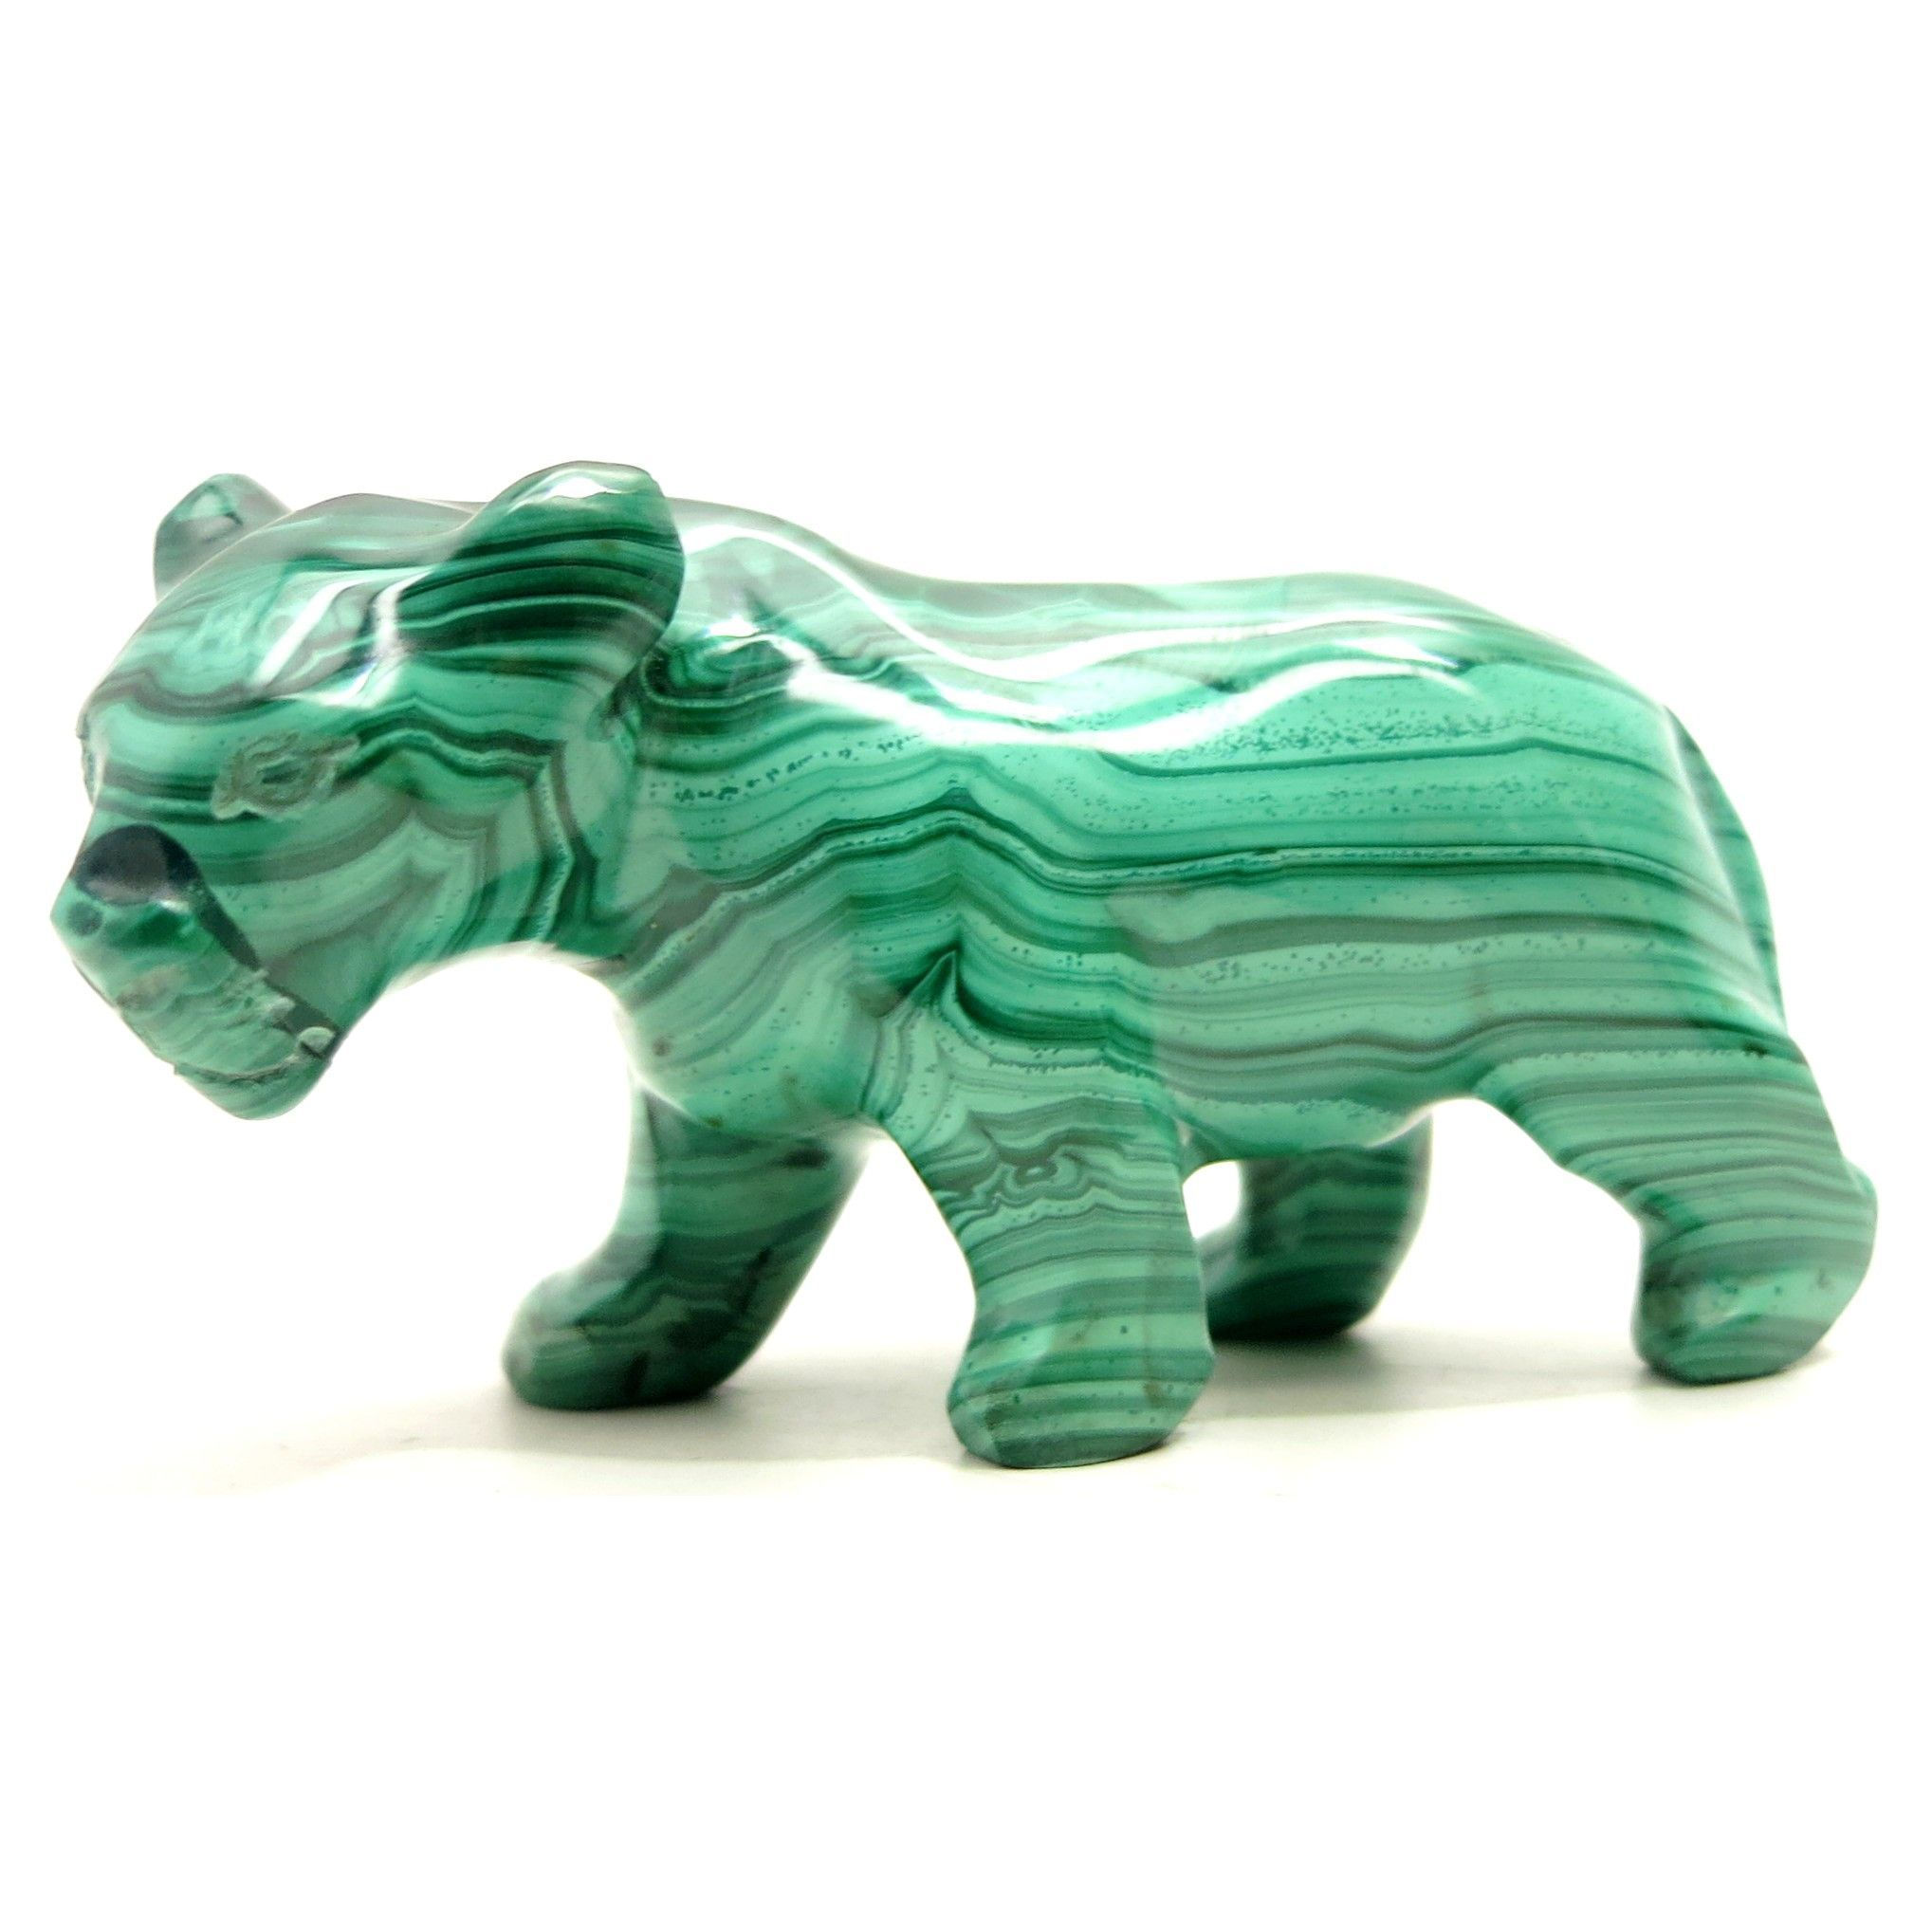 Malachite panther green stone carving wild cat inches